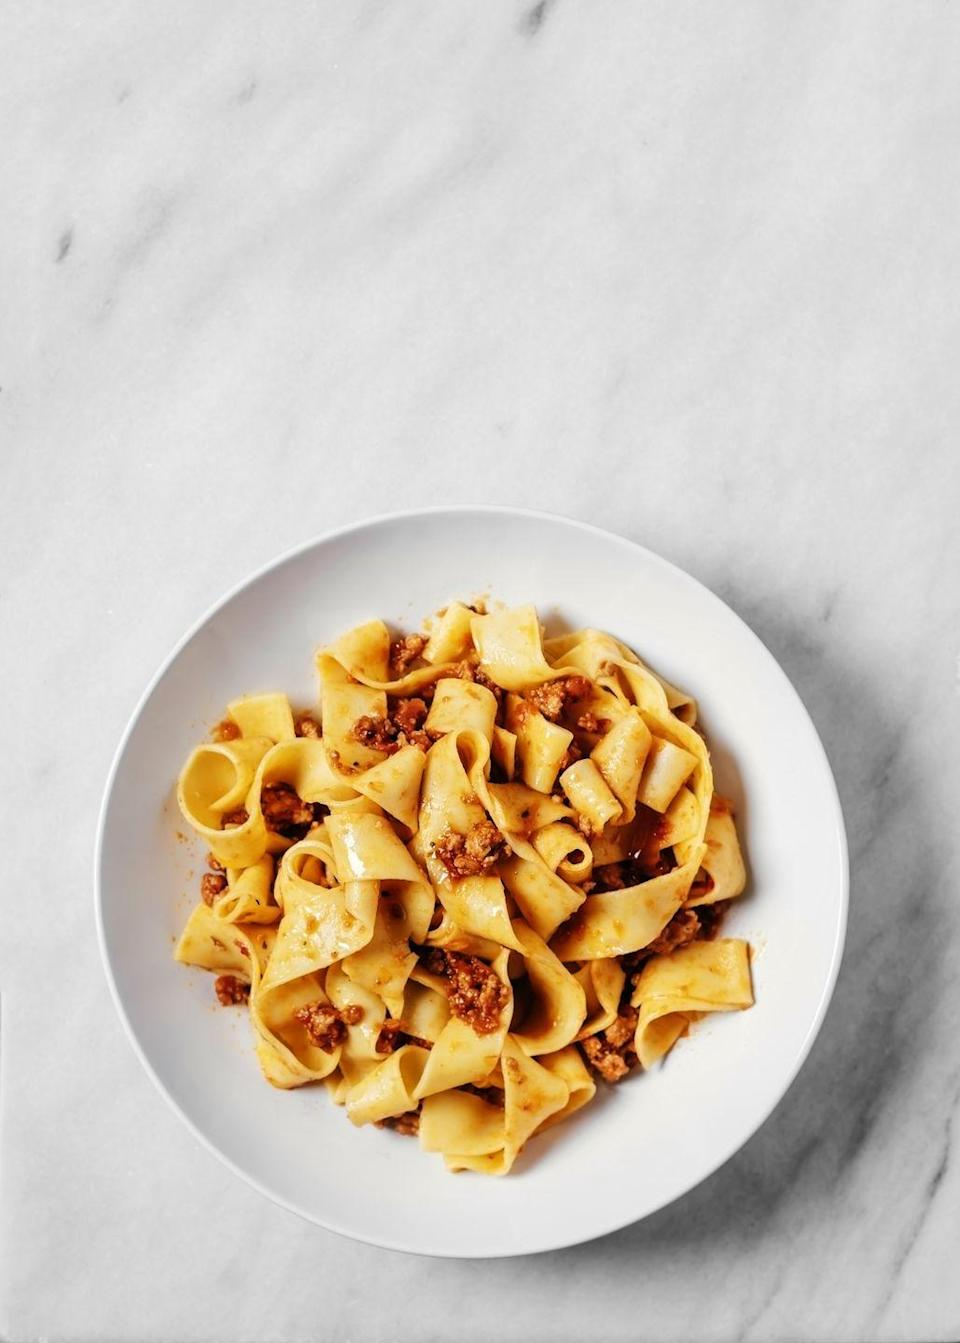 """<p><a href=""""https://www.delish.com/uk/cooking/recipes/a30387567/sausage-vegetable-ragout-pappardelle-recipe-kft0212/"""" rel=""""nofollow noopener"""" target=""""_blank"""" data-ylk=""""slk:Pappardelle"""" class=""""link rapid-noclick-resp"""">Pappardelle</a> works really well with a rich <a href=""""https://www.delish.com/uk/cooking/recipes/a30510748/lamb-ragu-recipe/"""" rel=""""nofollow noopener"""" target=""""_blank"""" data-ylk=""""slk:lamb ragù"""" class=""""link rapid-noclick-resp"""">lamb ragù</a> or a creamy mushroom sauce, like this <a href=""""https://www.delish.com/uk/cooking/recipes/a29019031/creamy-chicken-mushroom-pasta-recipe/"""" rel=""""nofollow noopener"""" target=""""_blank"""" data-ylk=""""slk:creamy chicken and mushroom sauce."""" class=""""link rapid-noclick-resp"""">creamy chicken and mushroom sauce.</a></p>"""